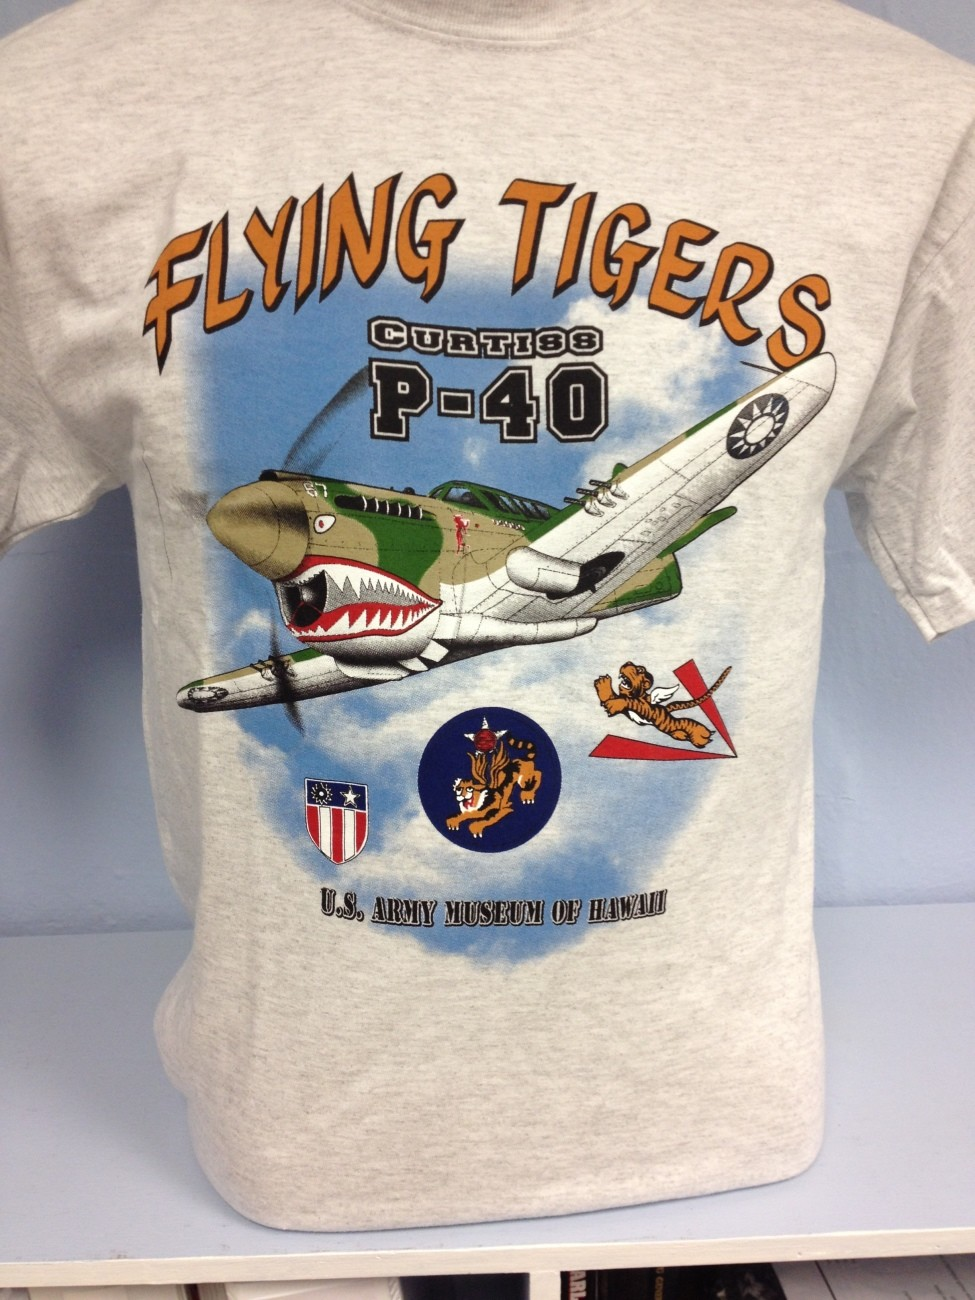 Flying Tigers Curtiss P-40 T-Shirt - Adult